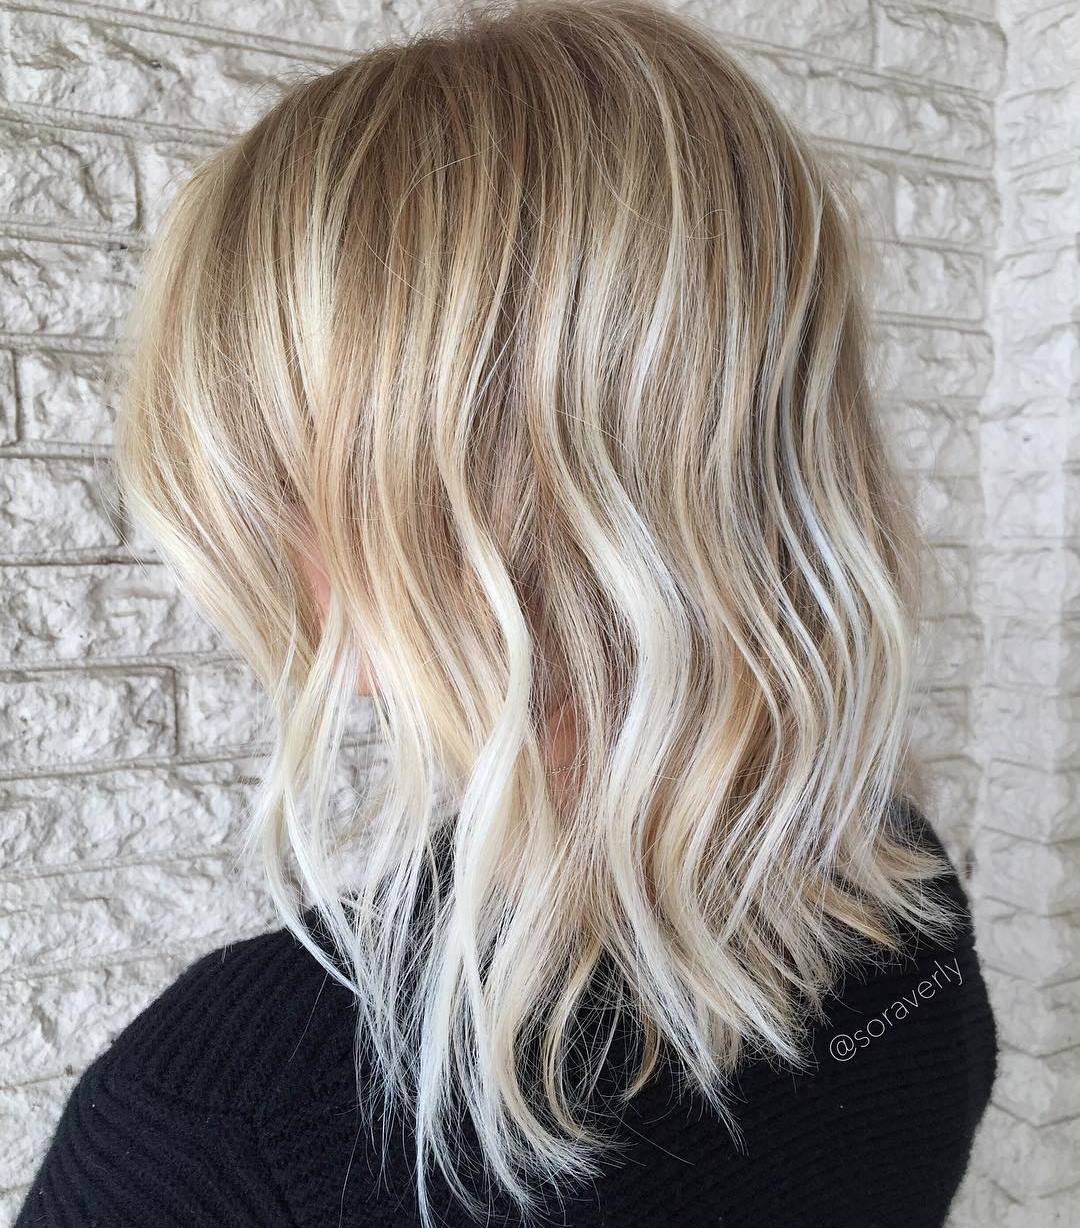 Mid Length Haircut With Textured Ends 70 Devastatingly